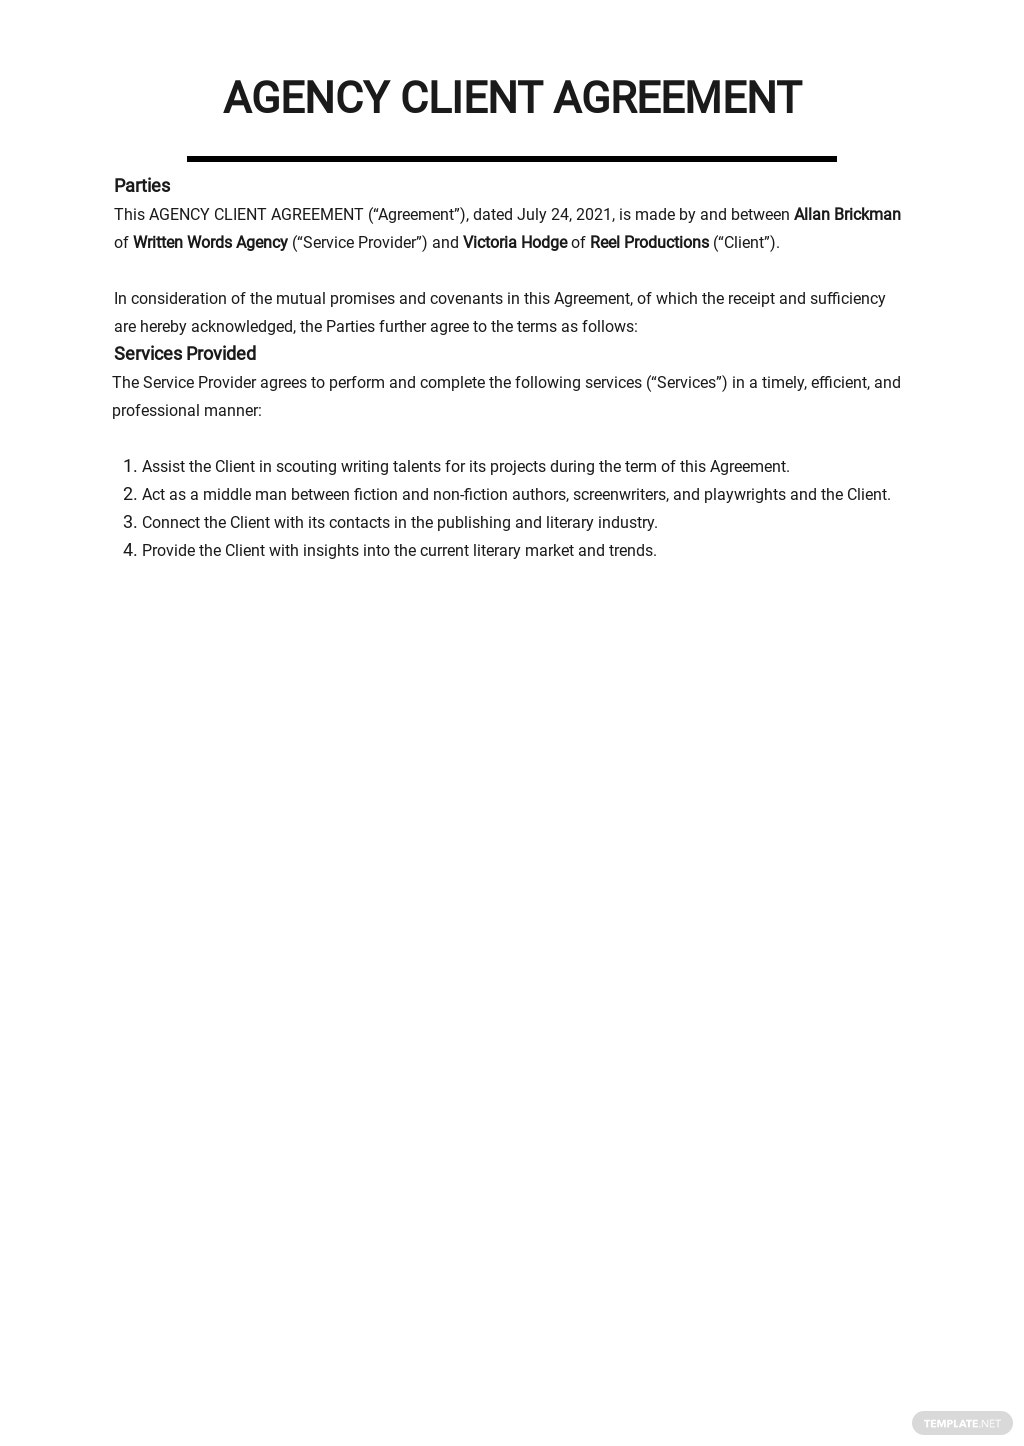 Agency Client Agreement Template.jpe